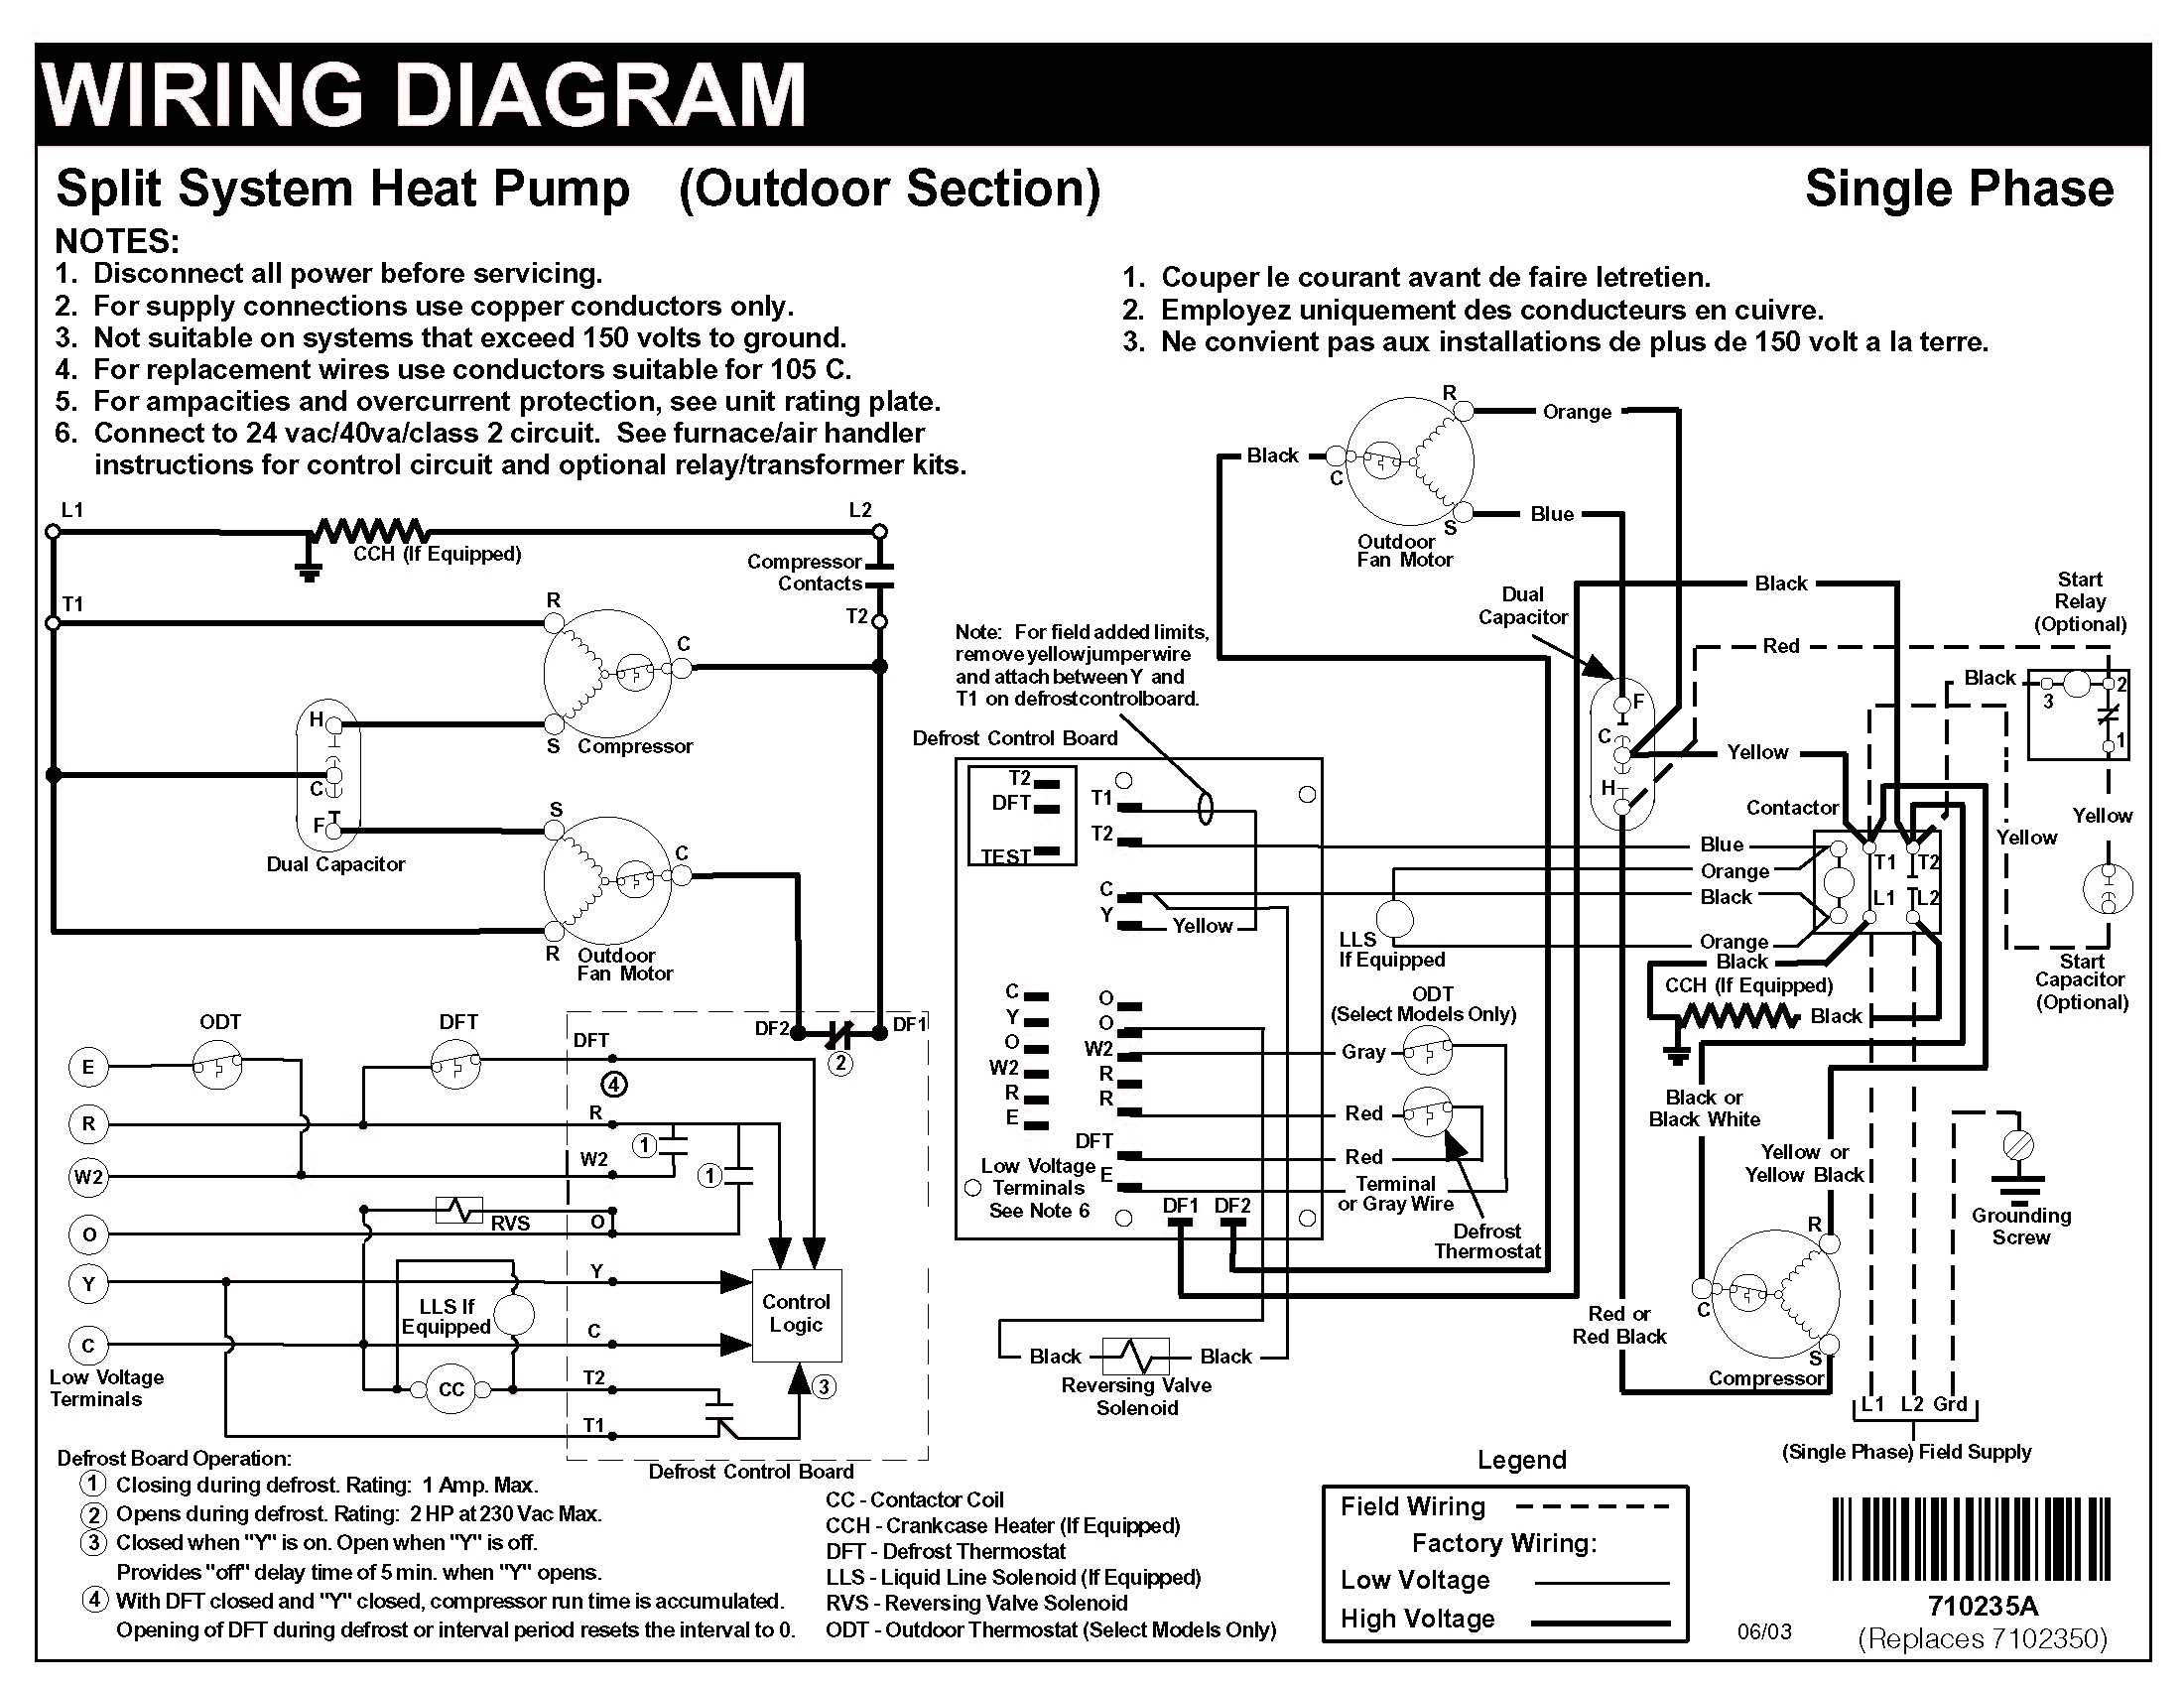 ducane heat pump wiring diagram Collection-valid wiring diagram heat pump system kobecityinfo rh kobecityinfo Ducane Heat Pump Wiring Diagram Nordyne Electric Furnace Wiring Diagram 1-o